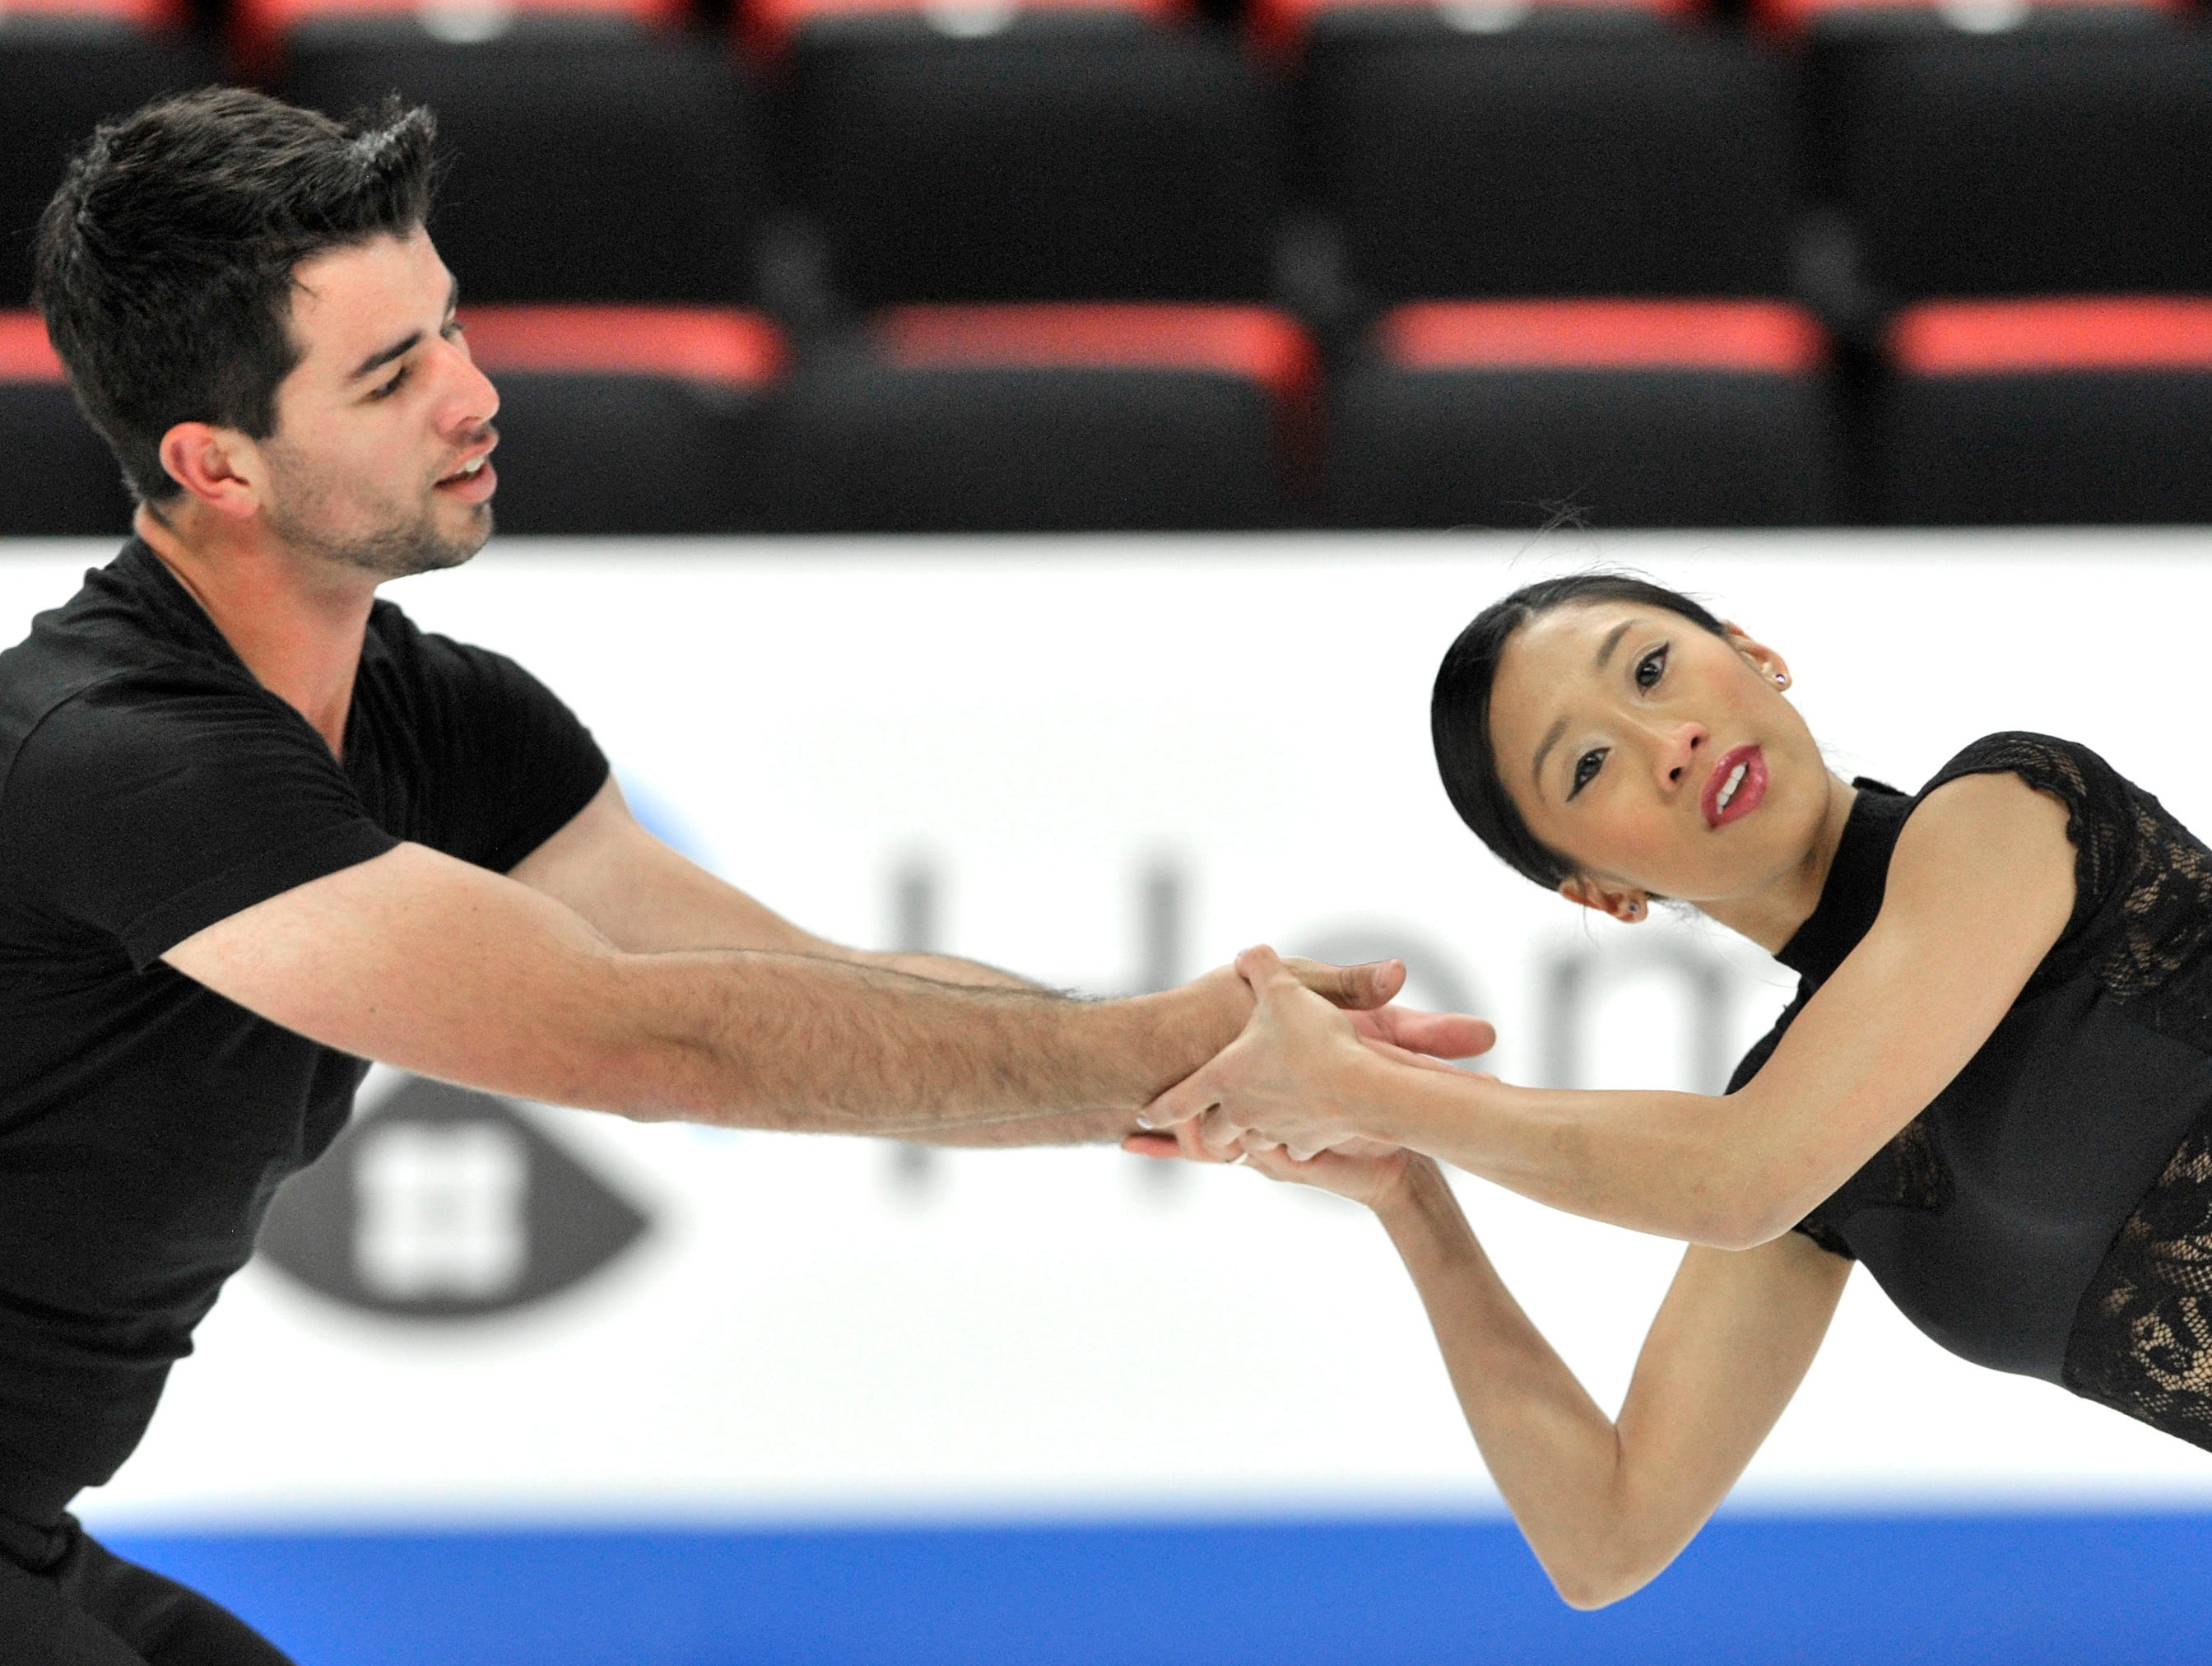 Pairs Jessica Calalang and Brian Johnson practice during the 2019 GEICO U.S. Figure Skating Championship at Little Caesars Arena in Detroit, Tuesday, January 22, 2019.